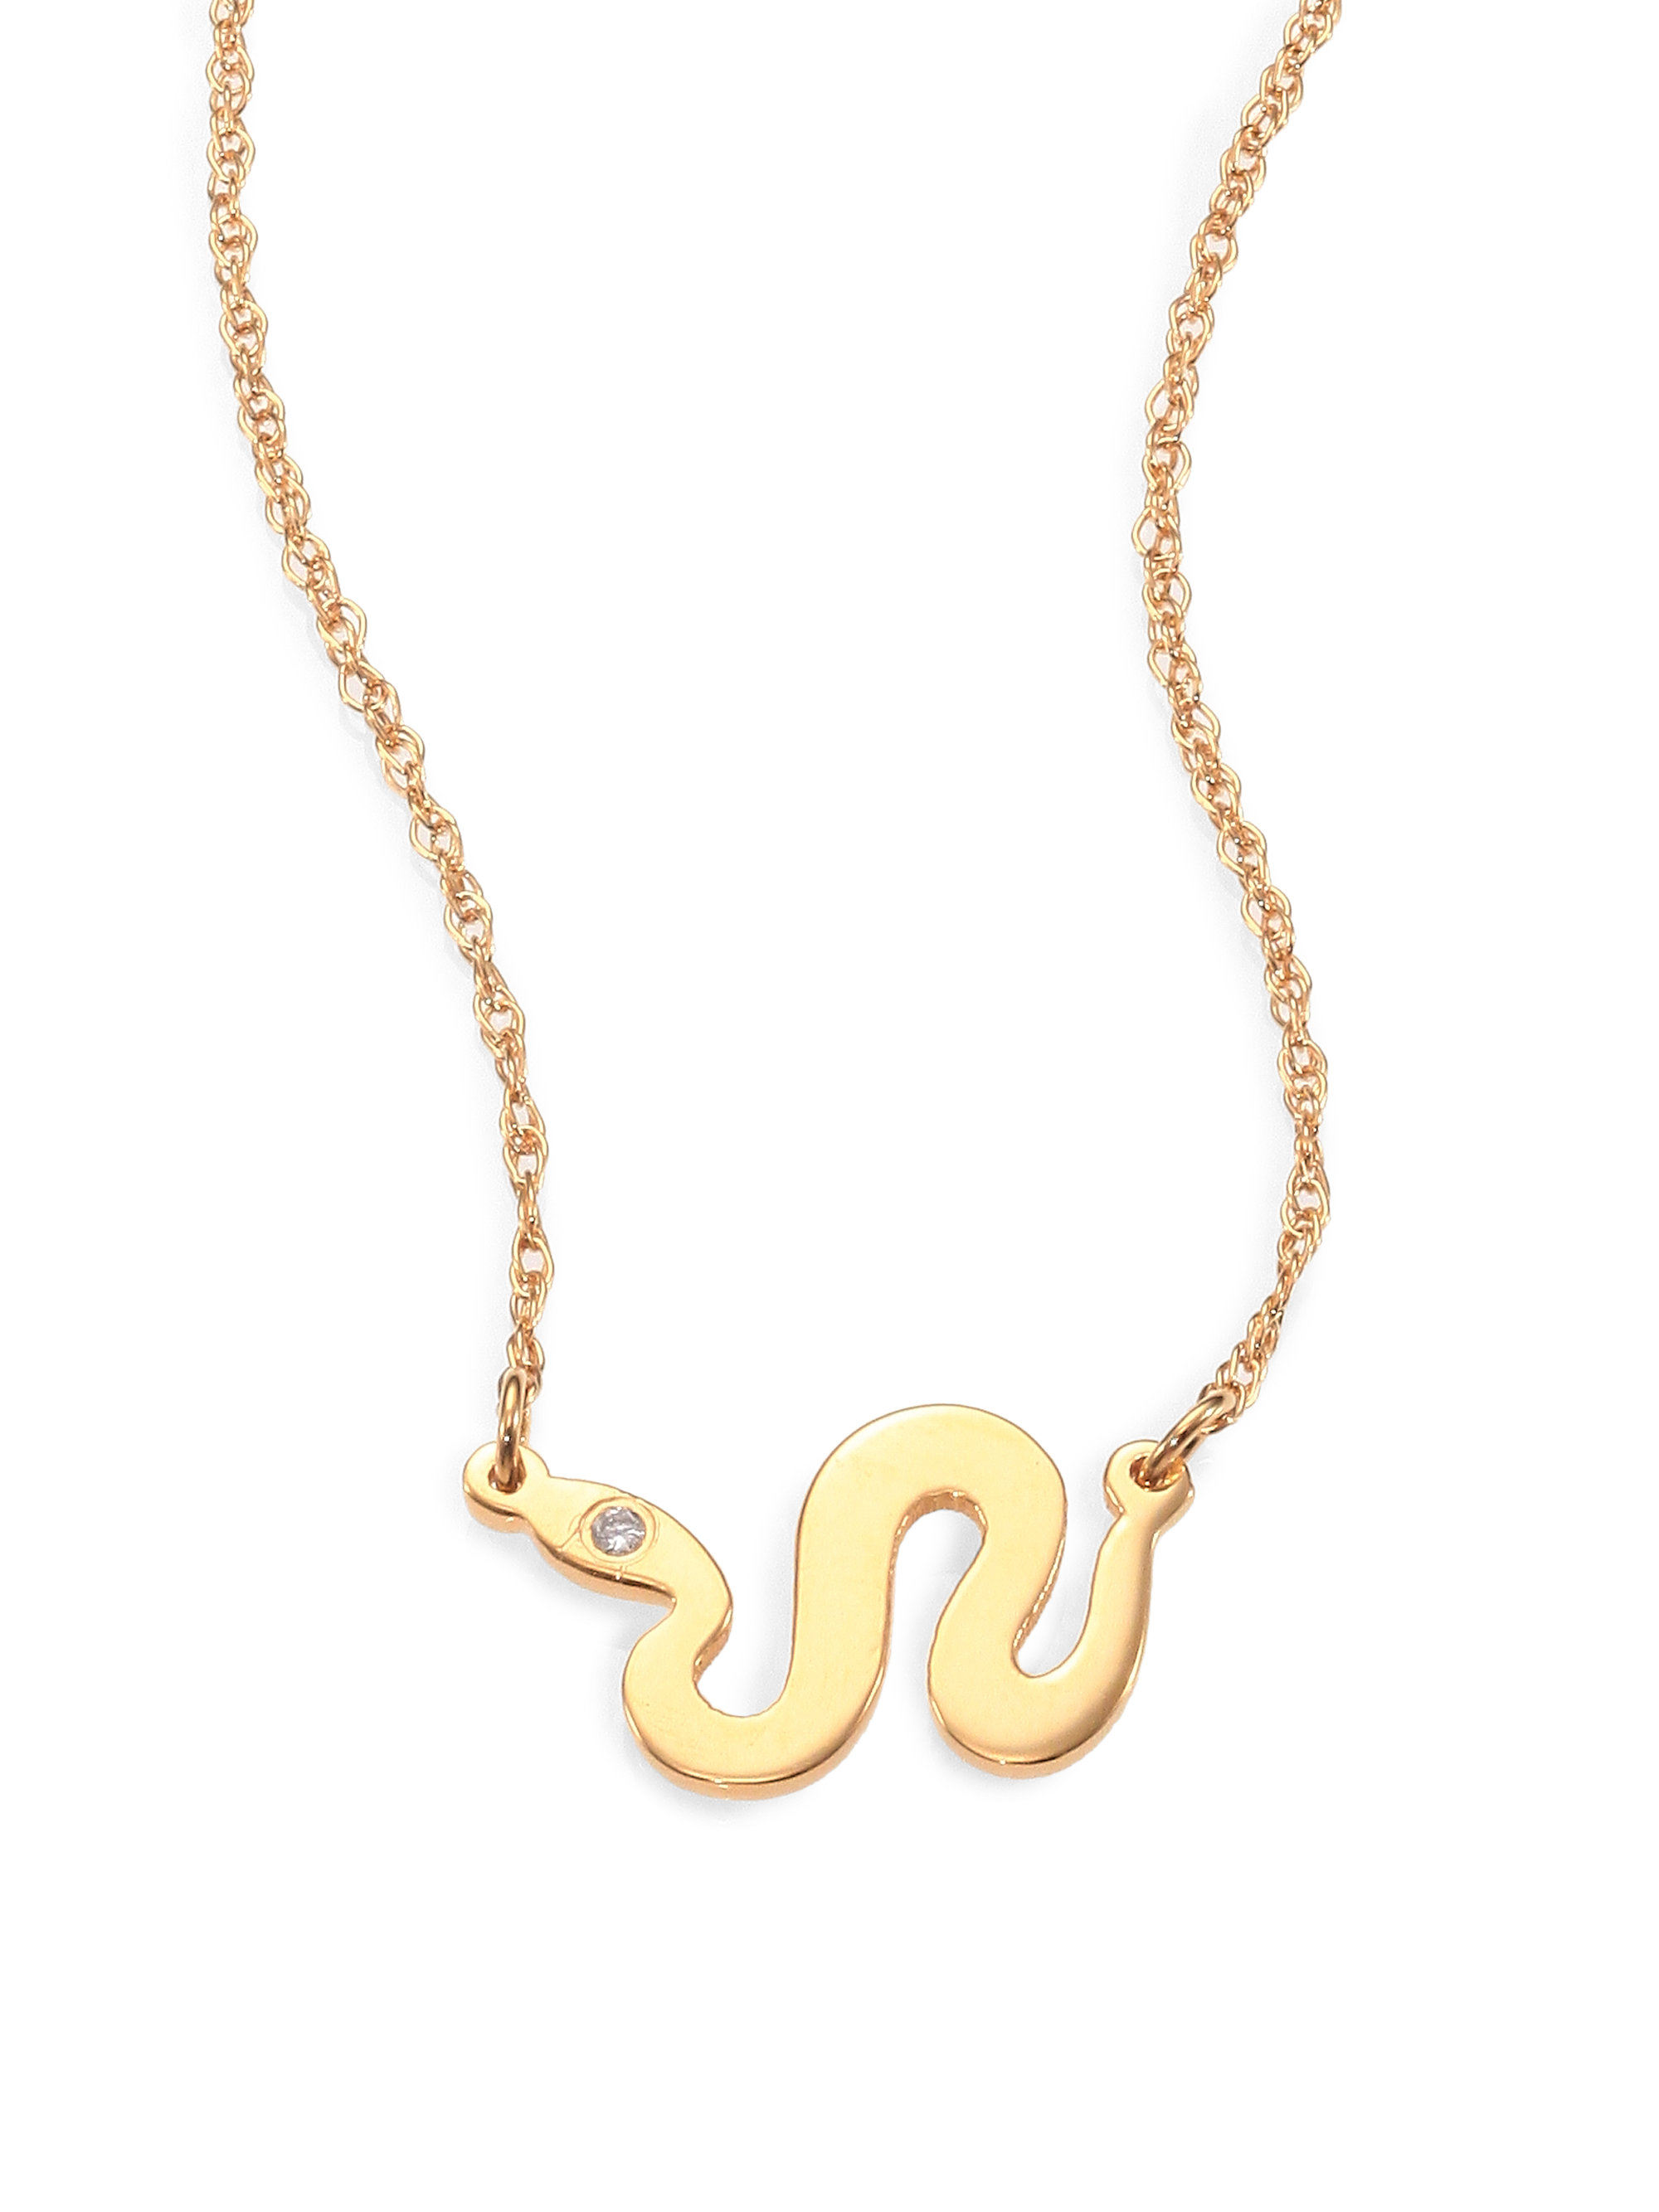 Jennifer Zeuner Alves Necklace Serpent Jewelry